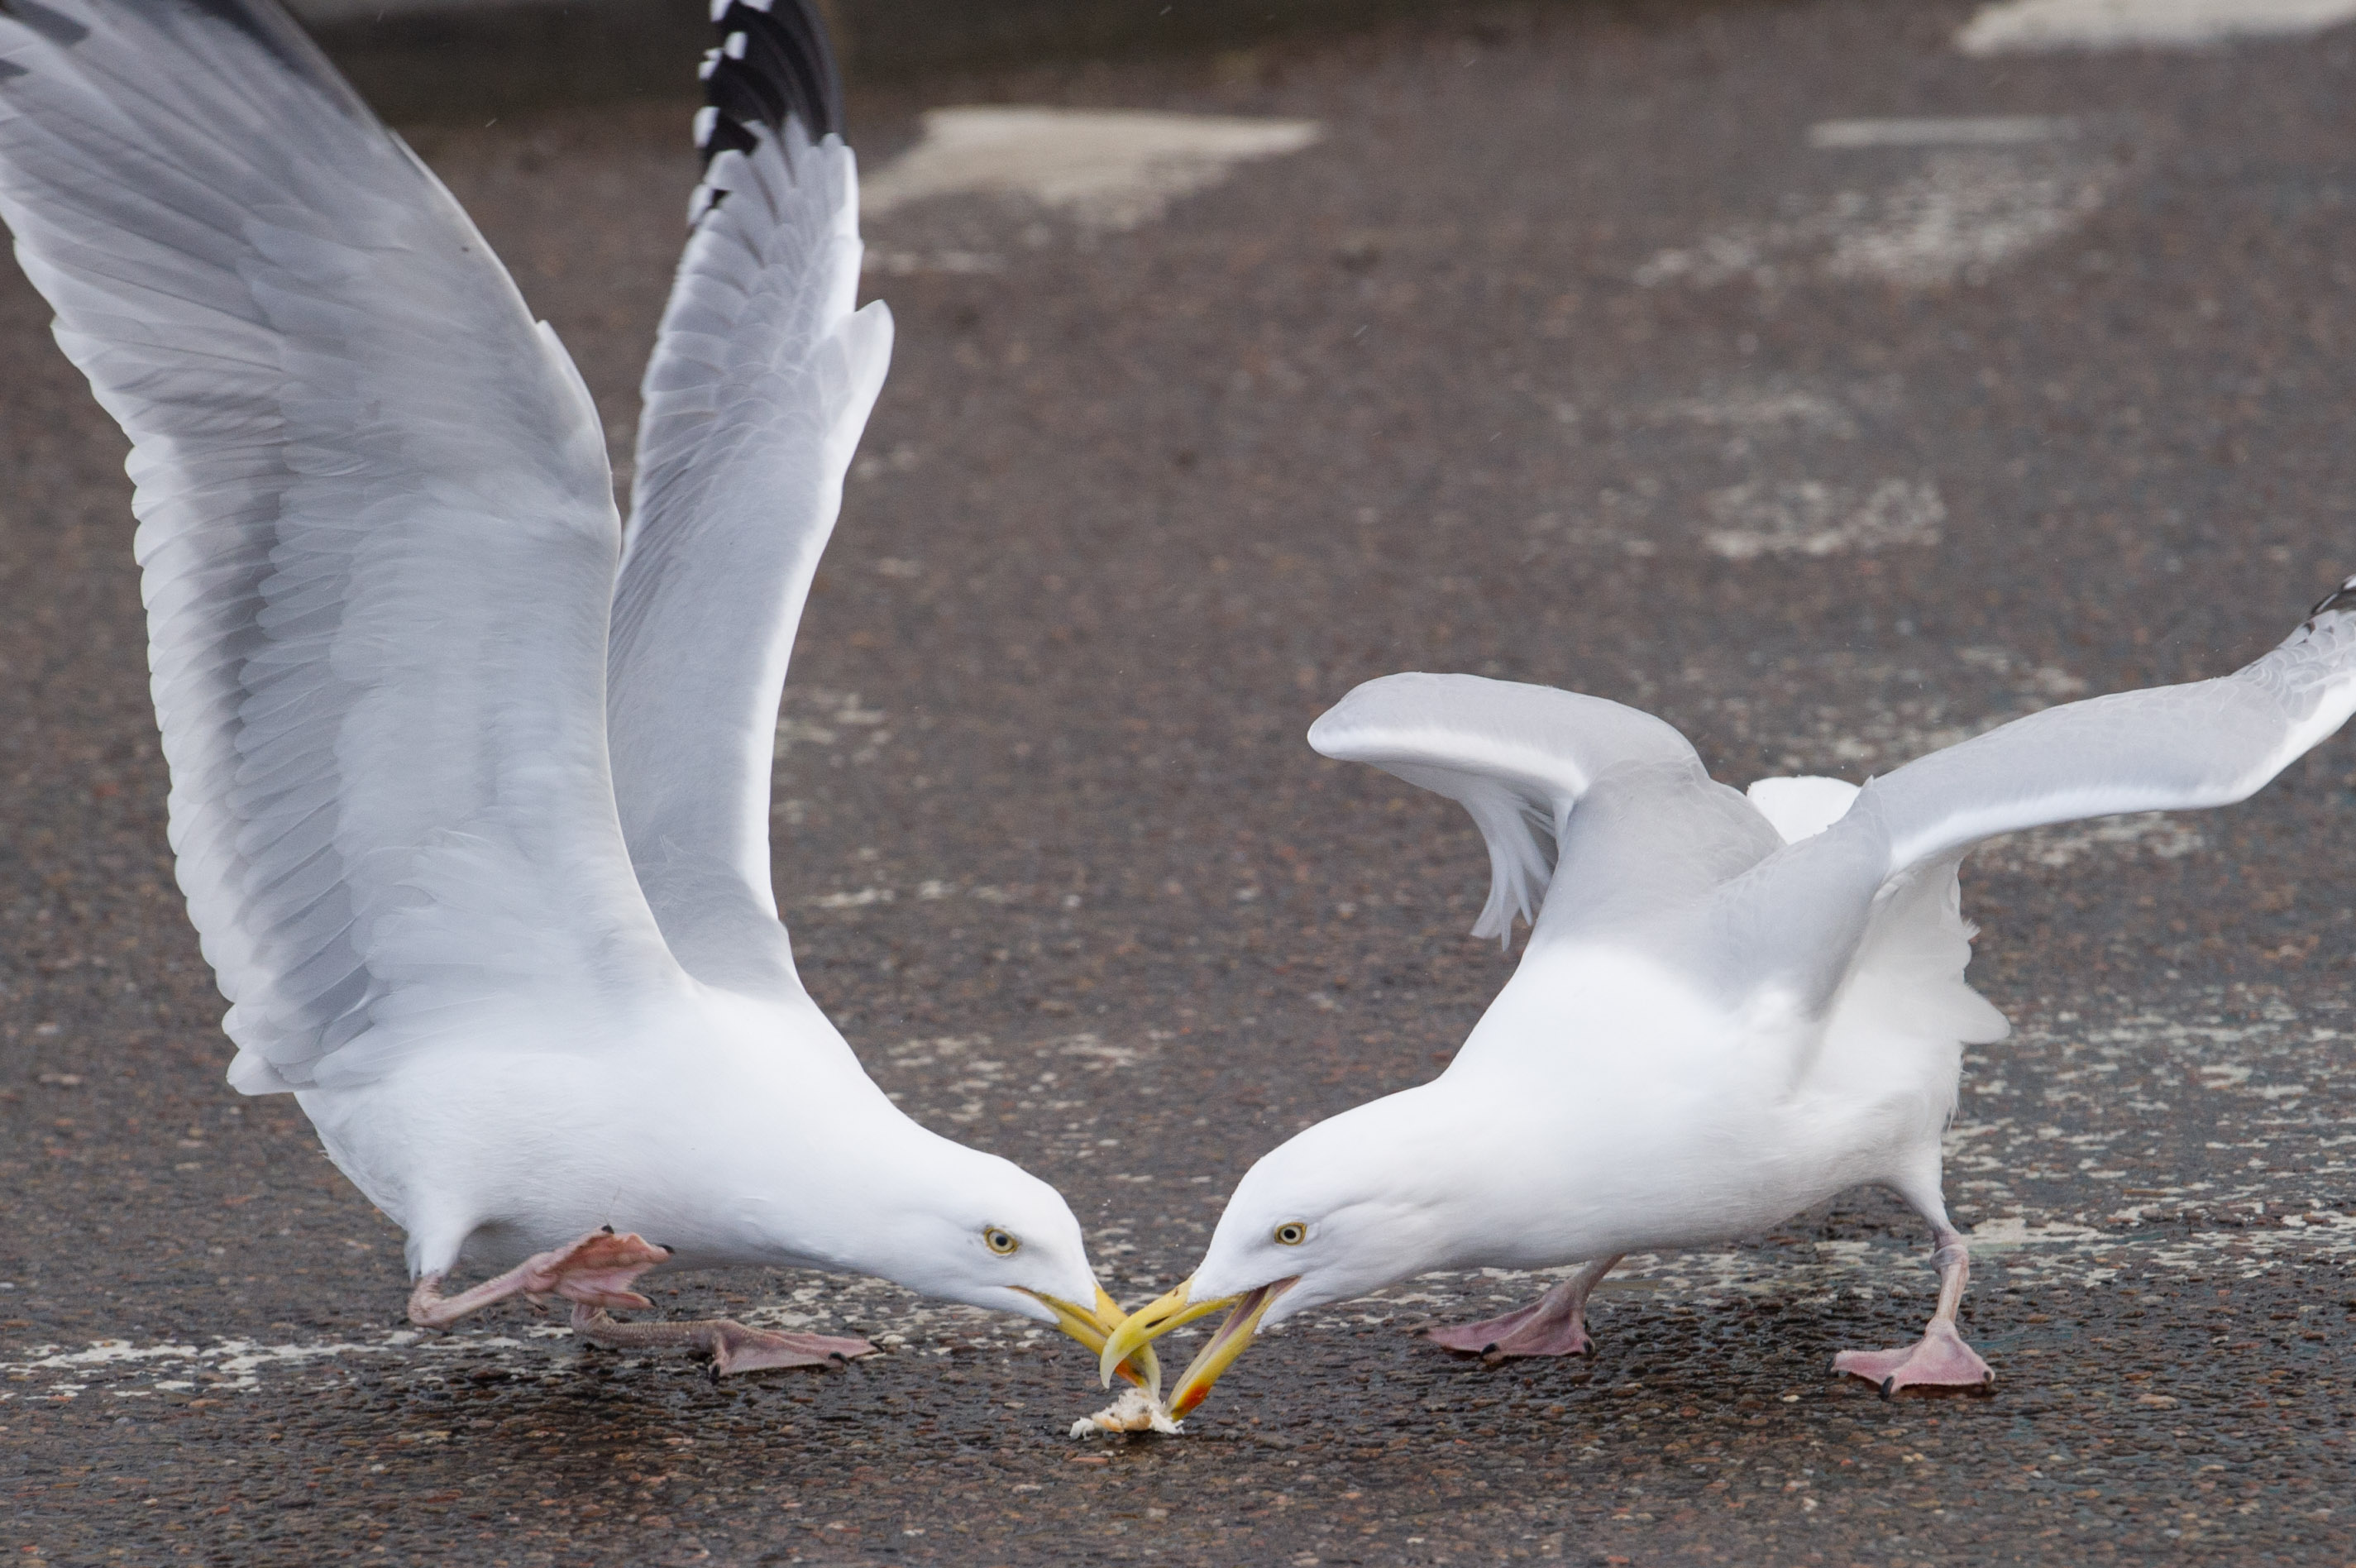 Gulls compete for food in the north east.